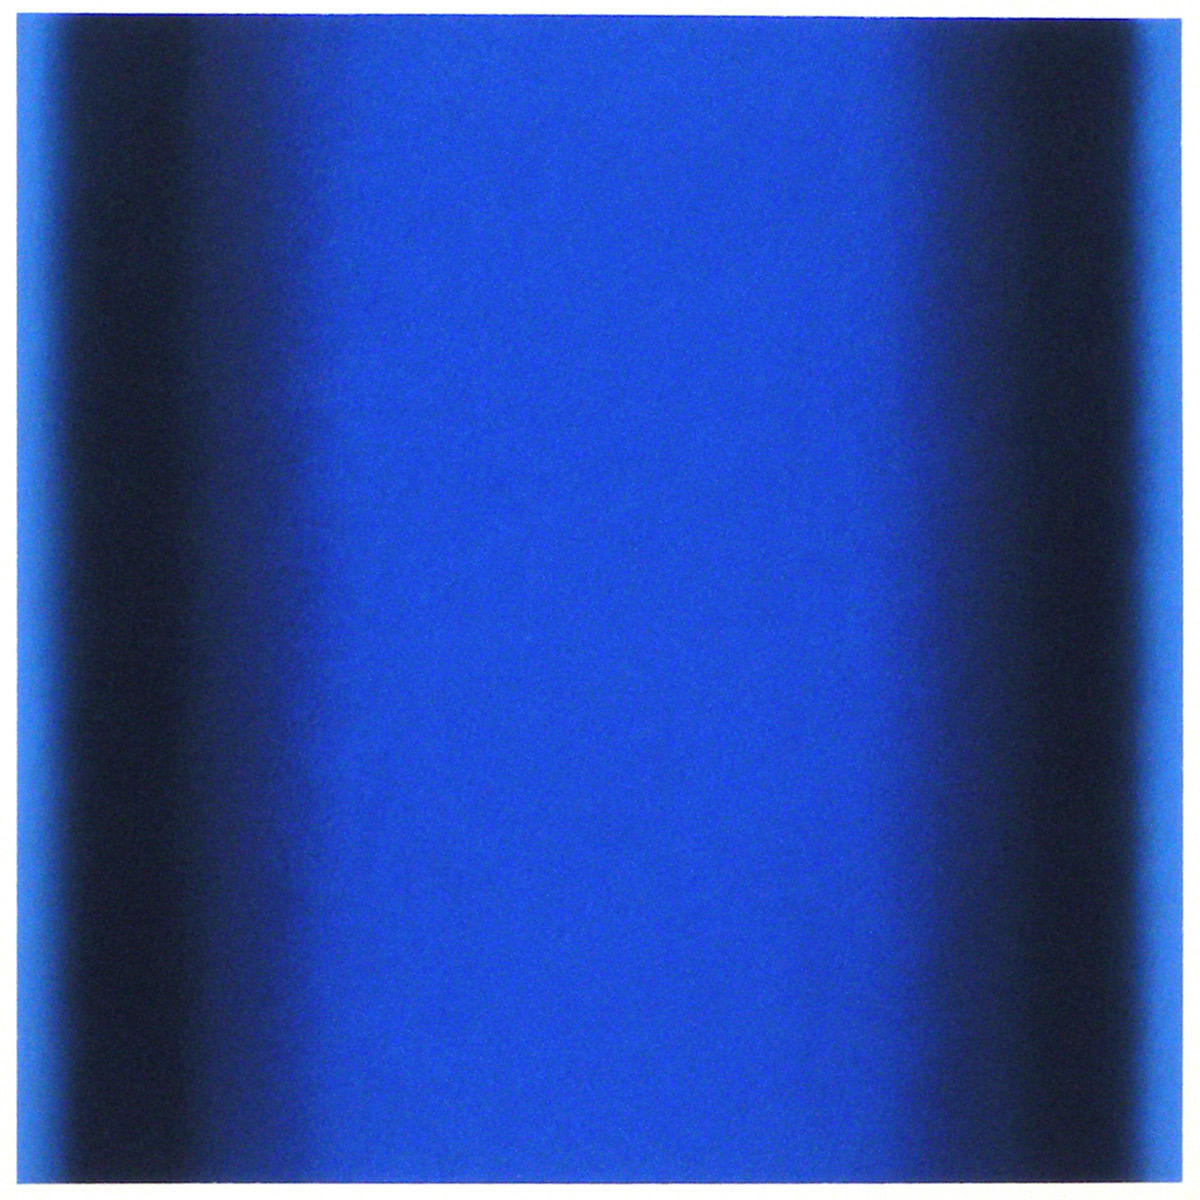 Cool-Light Ultramarine-Delft-Prussian, Interplay Series, 2012, pastel on paper, image: 14 x 14 in. (36 x 36 cm.), sheet: 30 x 22 in. (76 x 56 cm.)